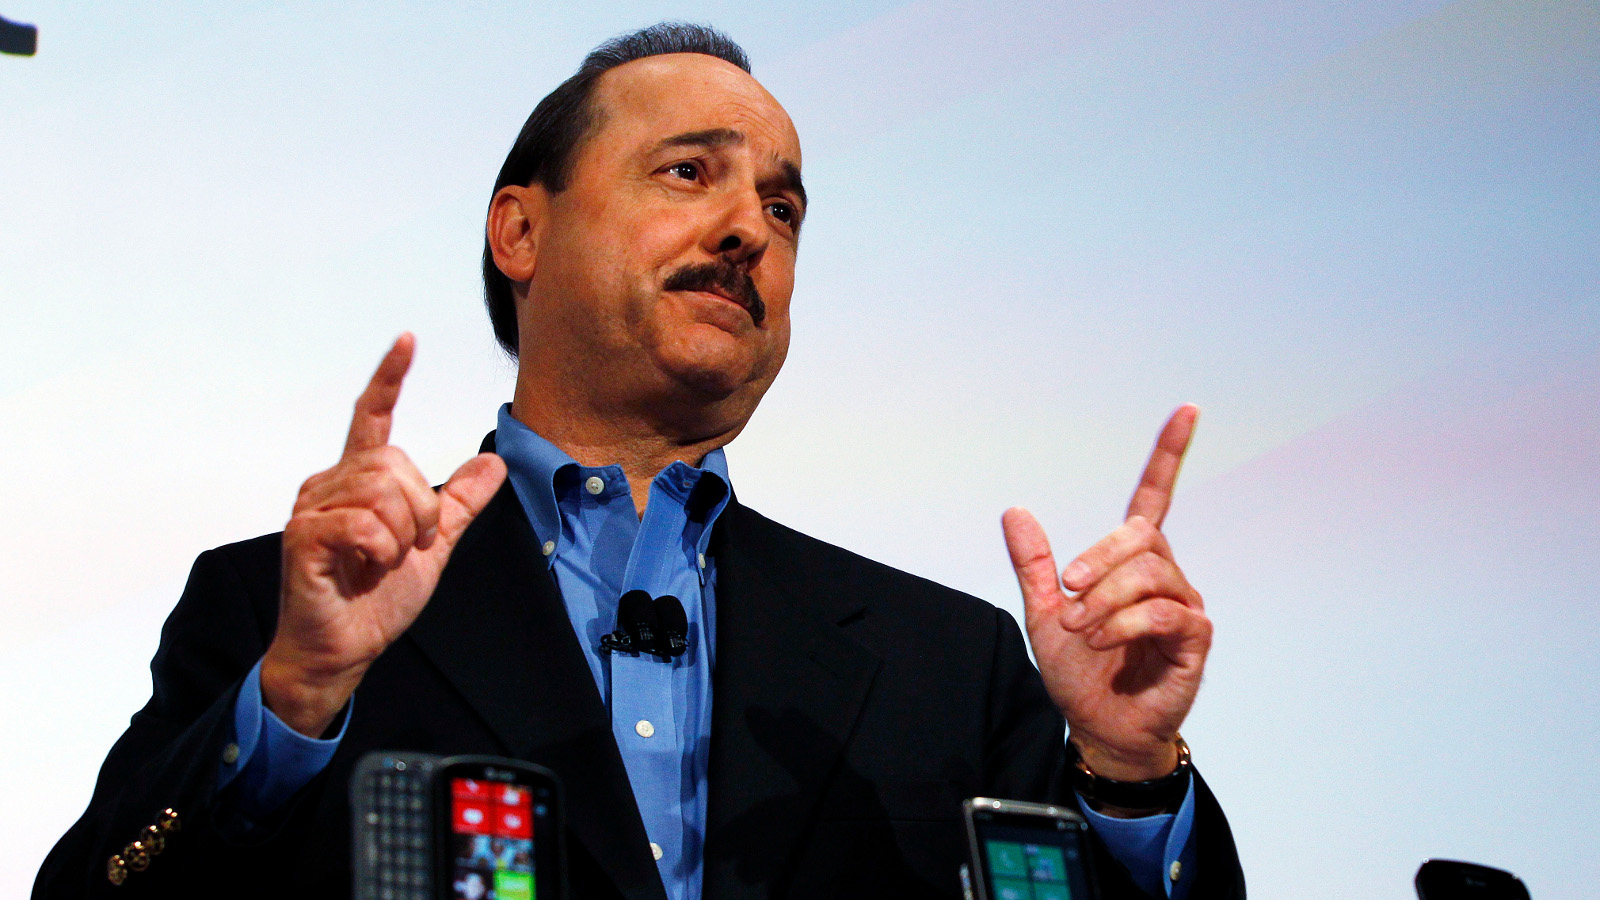 President & CEO of AT&T Mobility and Consumer Markets Ralph de la Vega speaks during the Windows Phone 7 launch in New York, October 11, 2010.